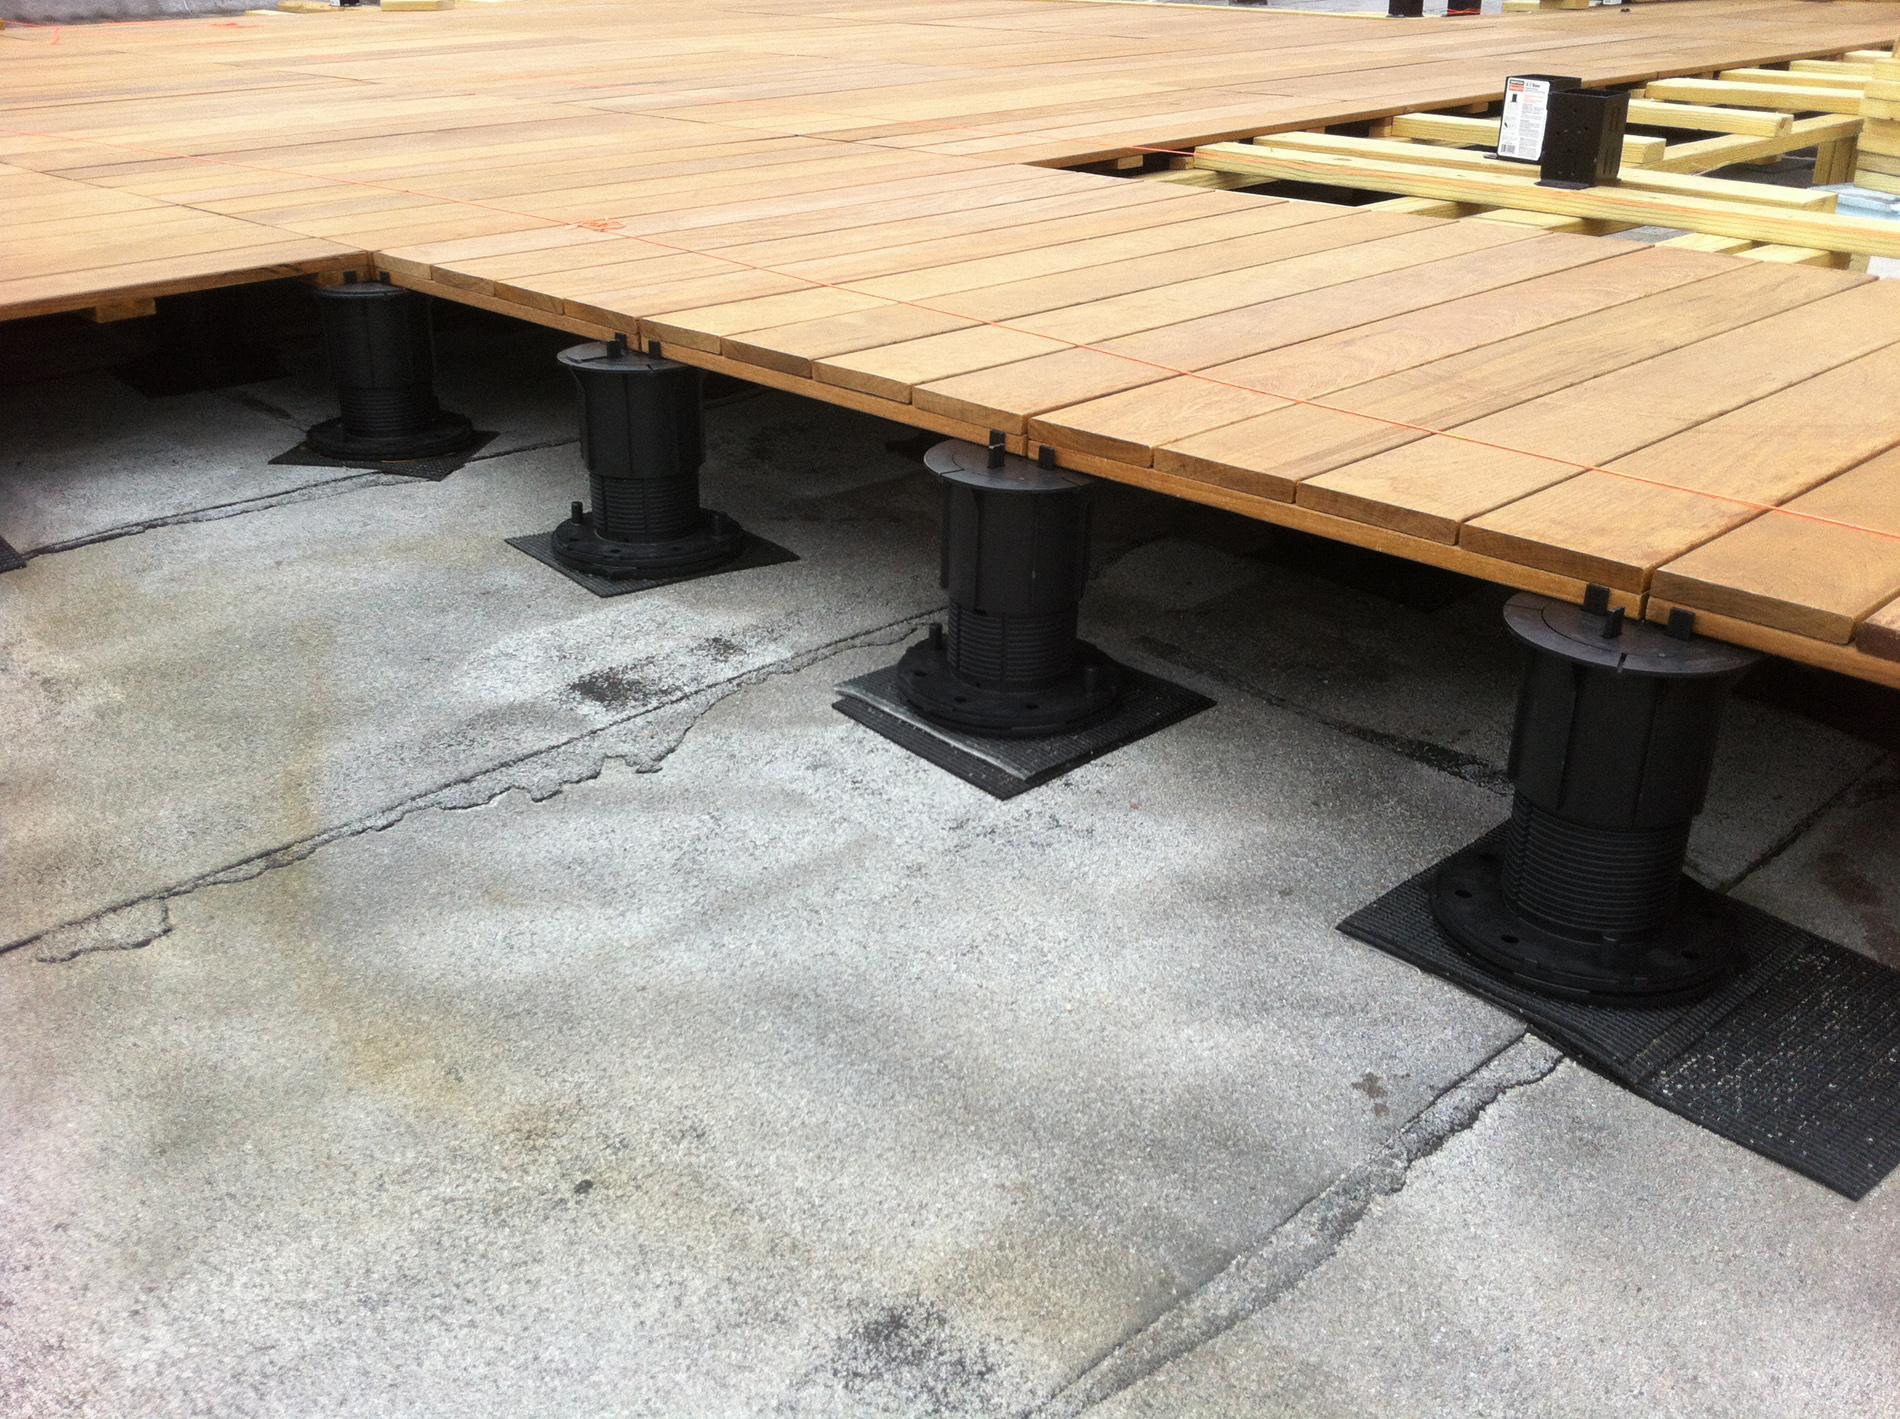 High Quality Pedestal Decking System Detail Of Struts Holding Deck To Elevation On Roof